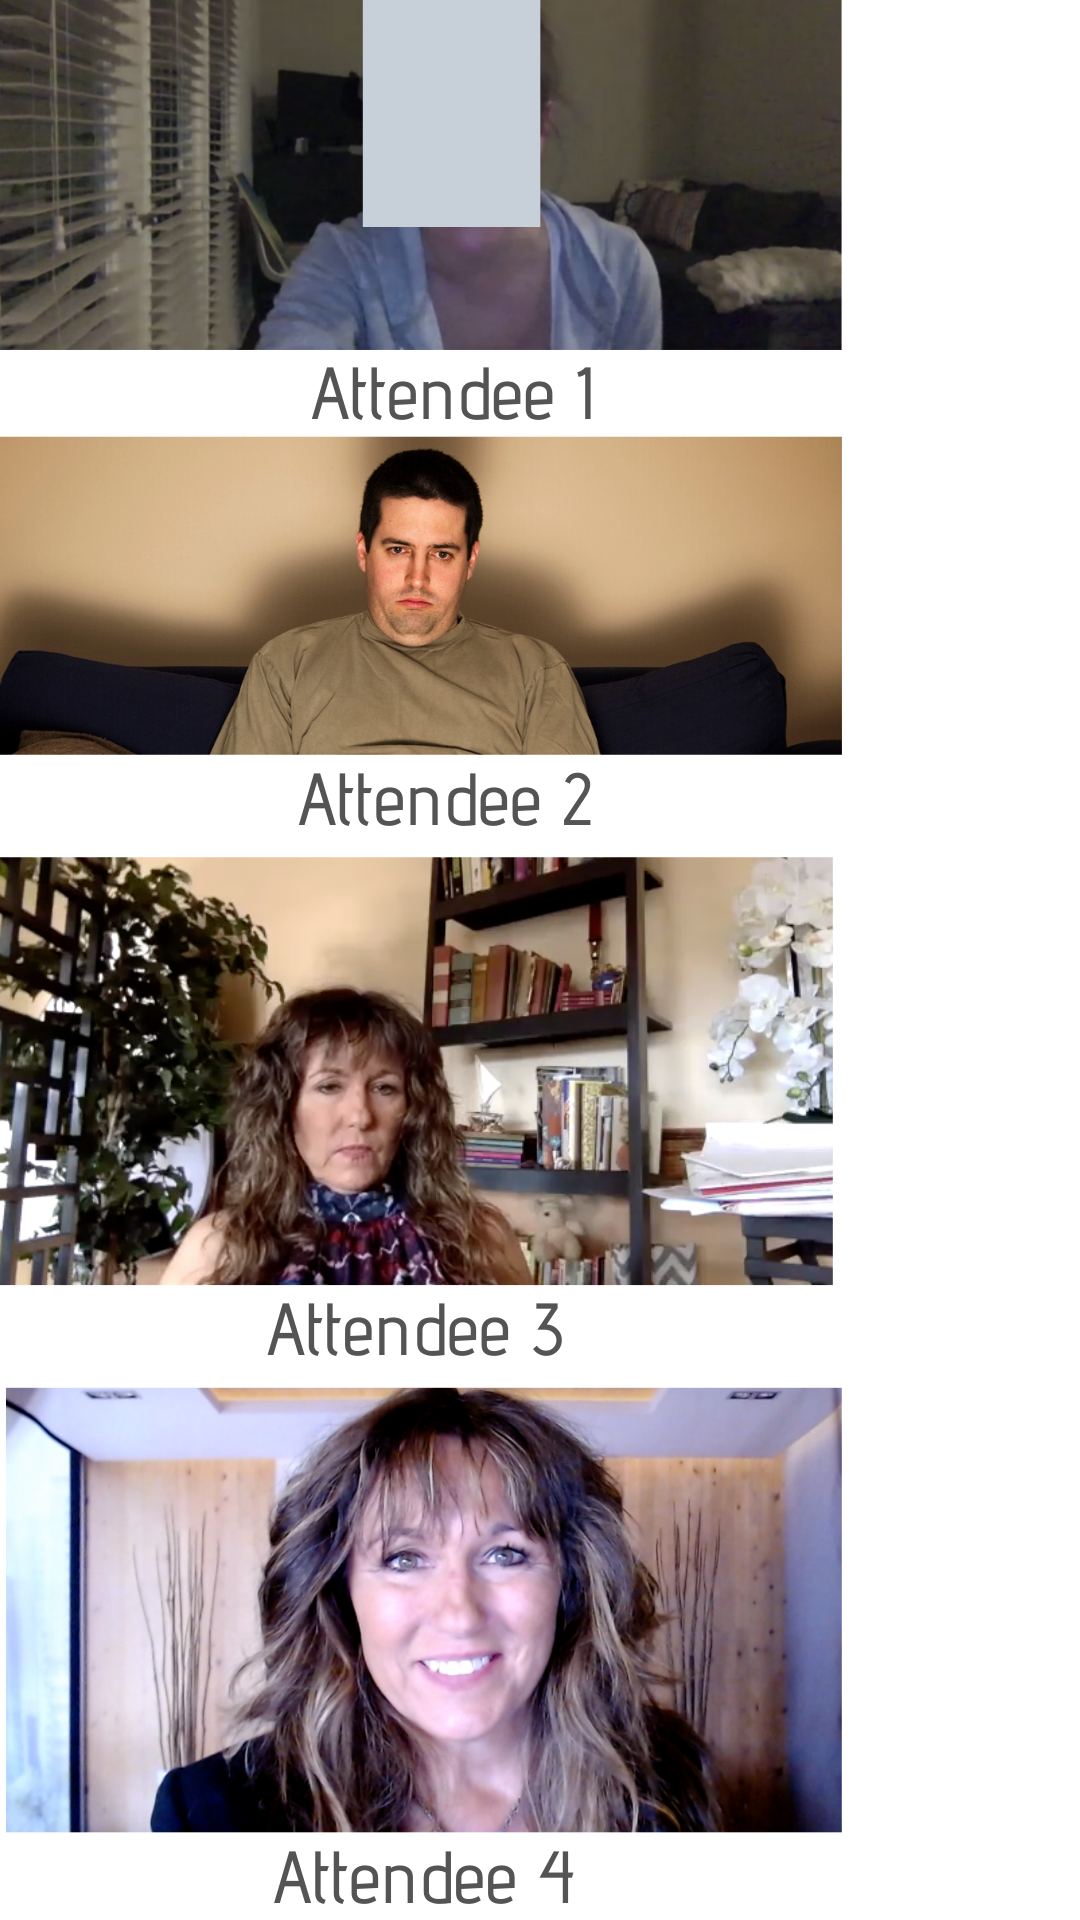 Bad and good examples of people in video meetings